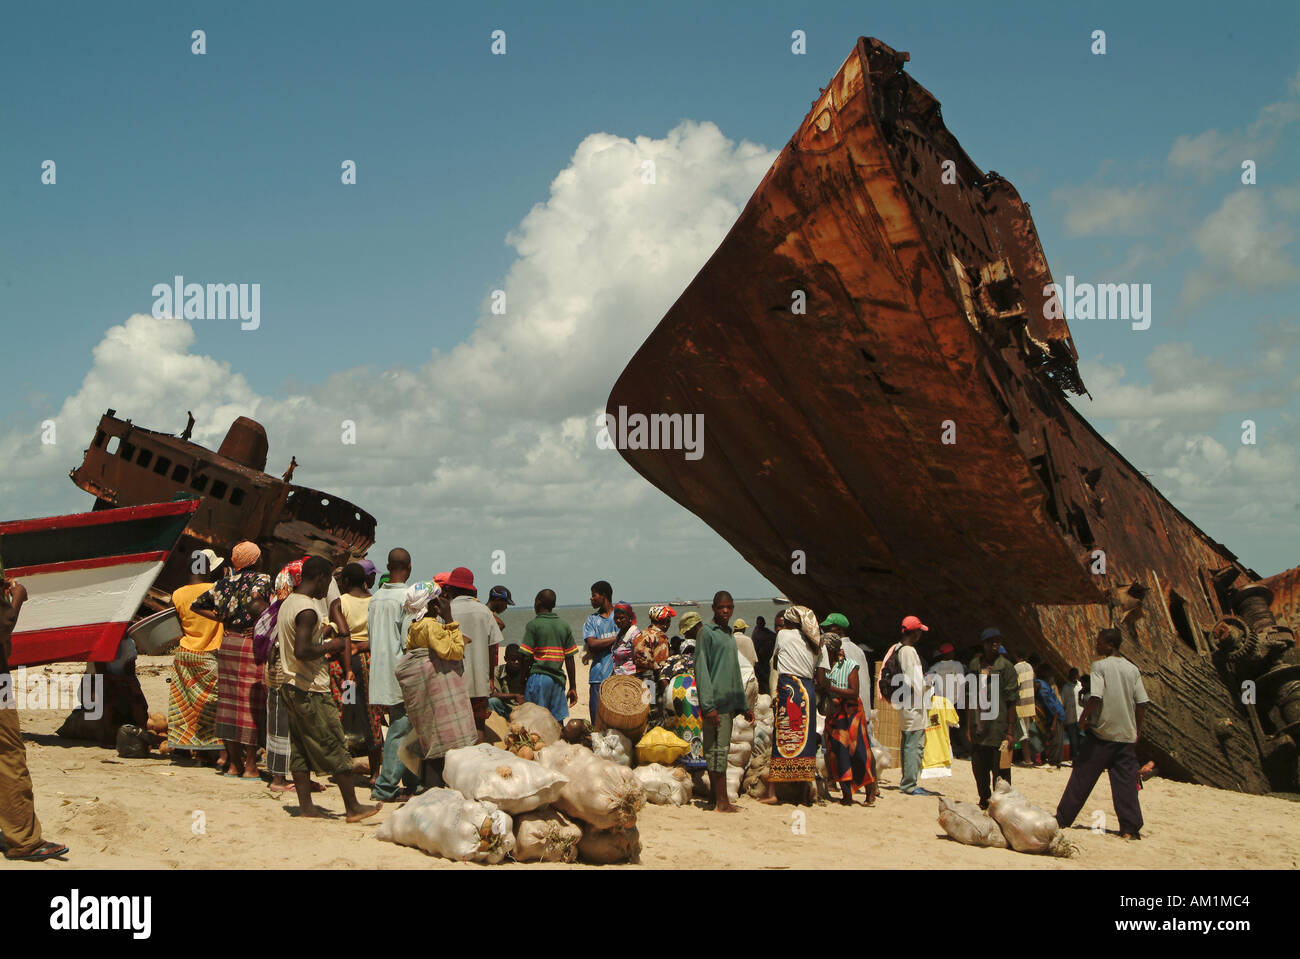 An old rusty tanker shipwreck on the beach of Beira. Mozambique, Southern Africa - Stock Image